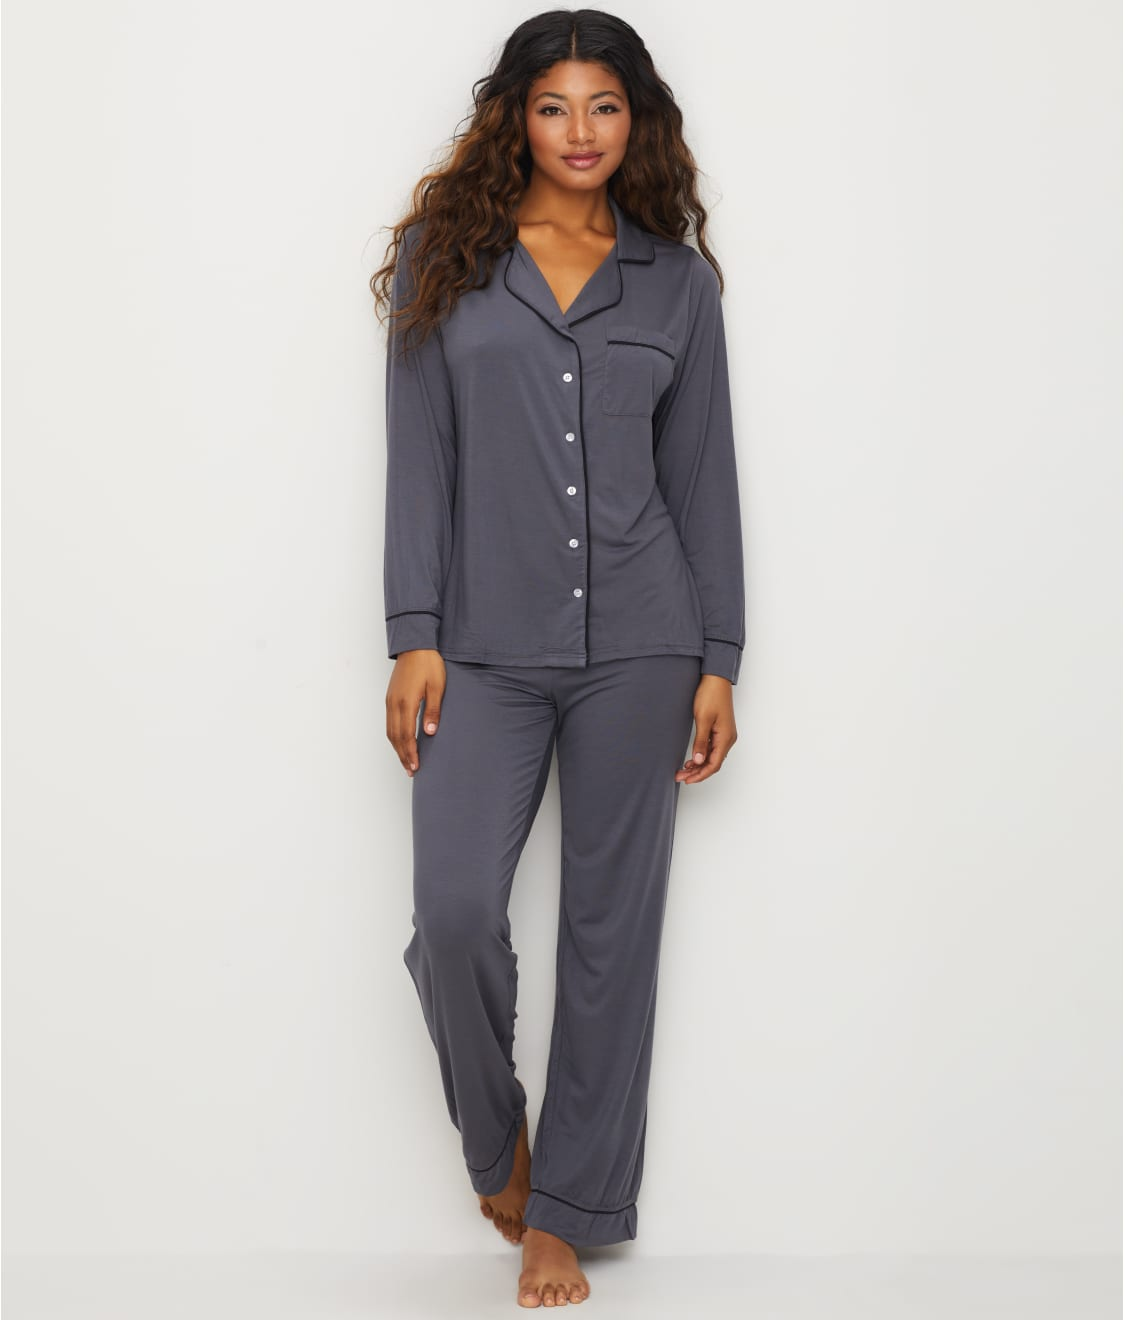 205bc6eb7b Barefoot Dreams Luxe   Milk Jersey® Piped Pajama Set.  130.00. FREE 2-DAY  SHIPPING